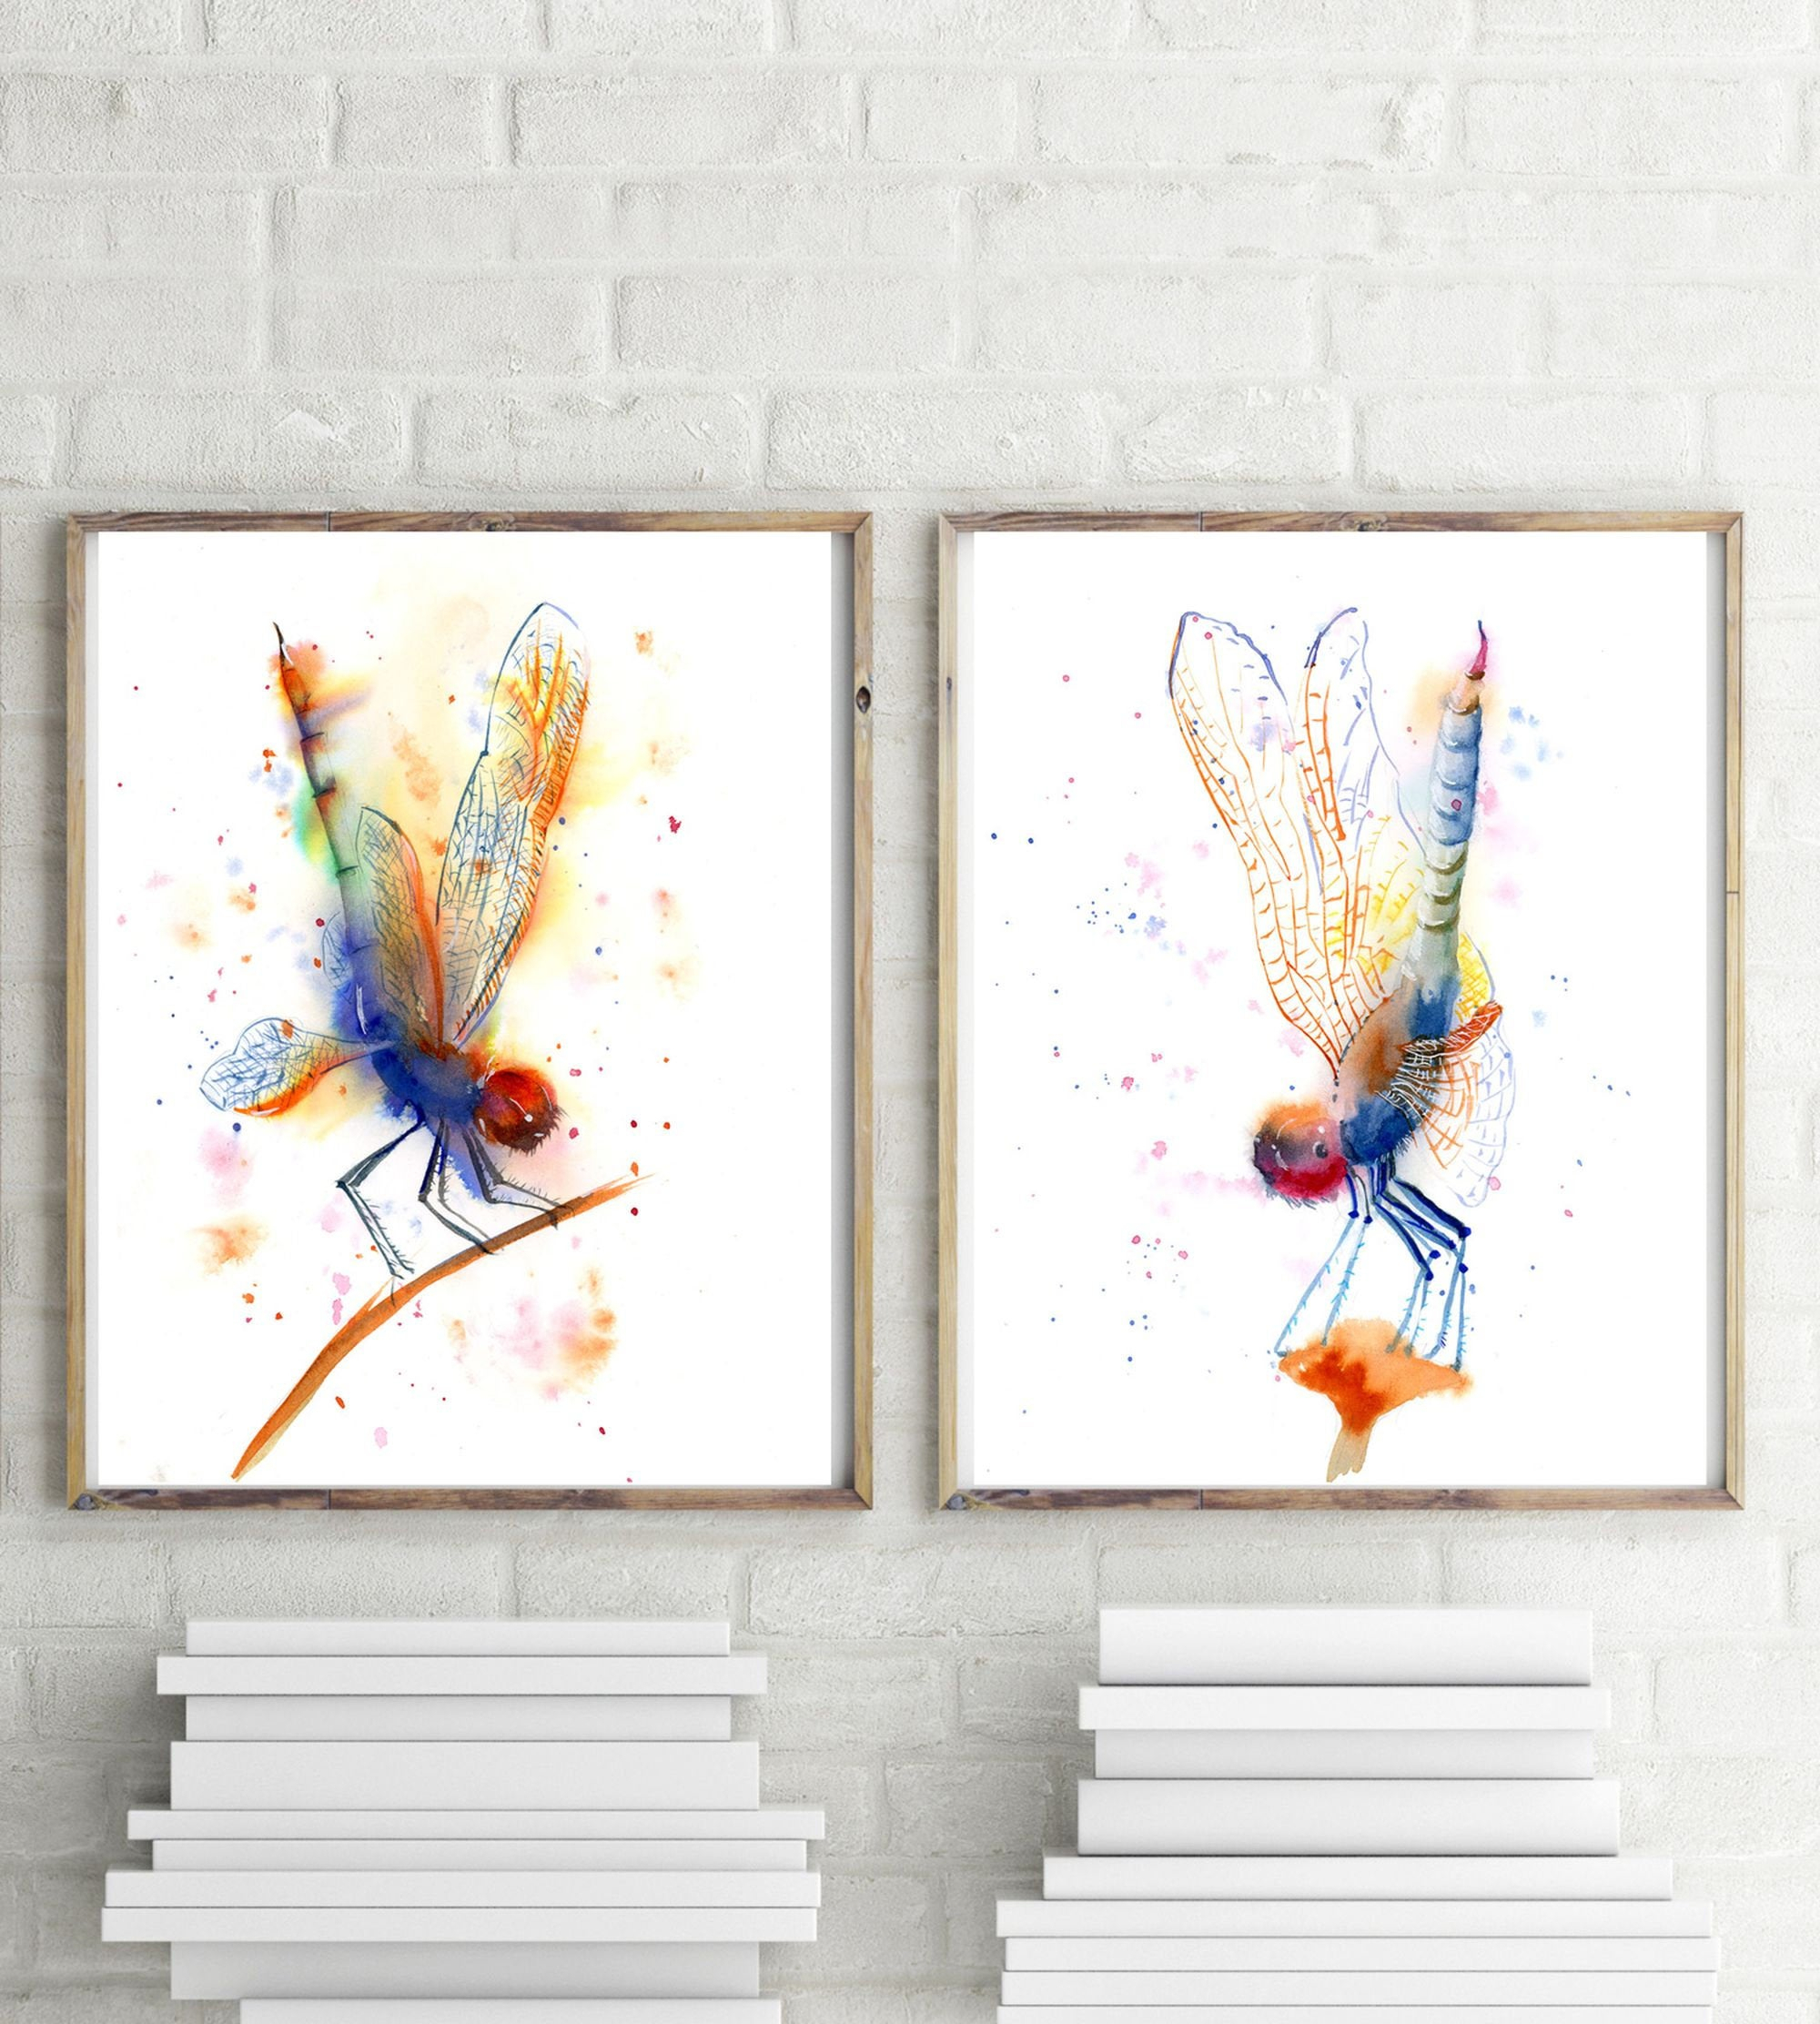 Dragonfly Wall Art Set Of 2 Prints Dragonfly Art Watercolor Insect Painting  Colorful Artwork Dragonfly Home Decor Gift Gallery Wall Decor Within Dragonfly Wall Decor (Photo 15 of 30)